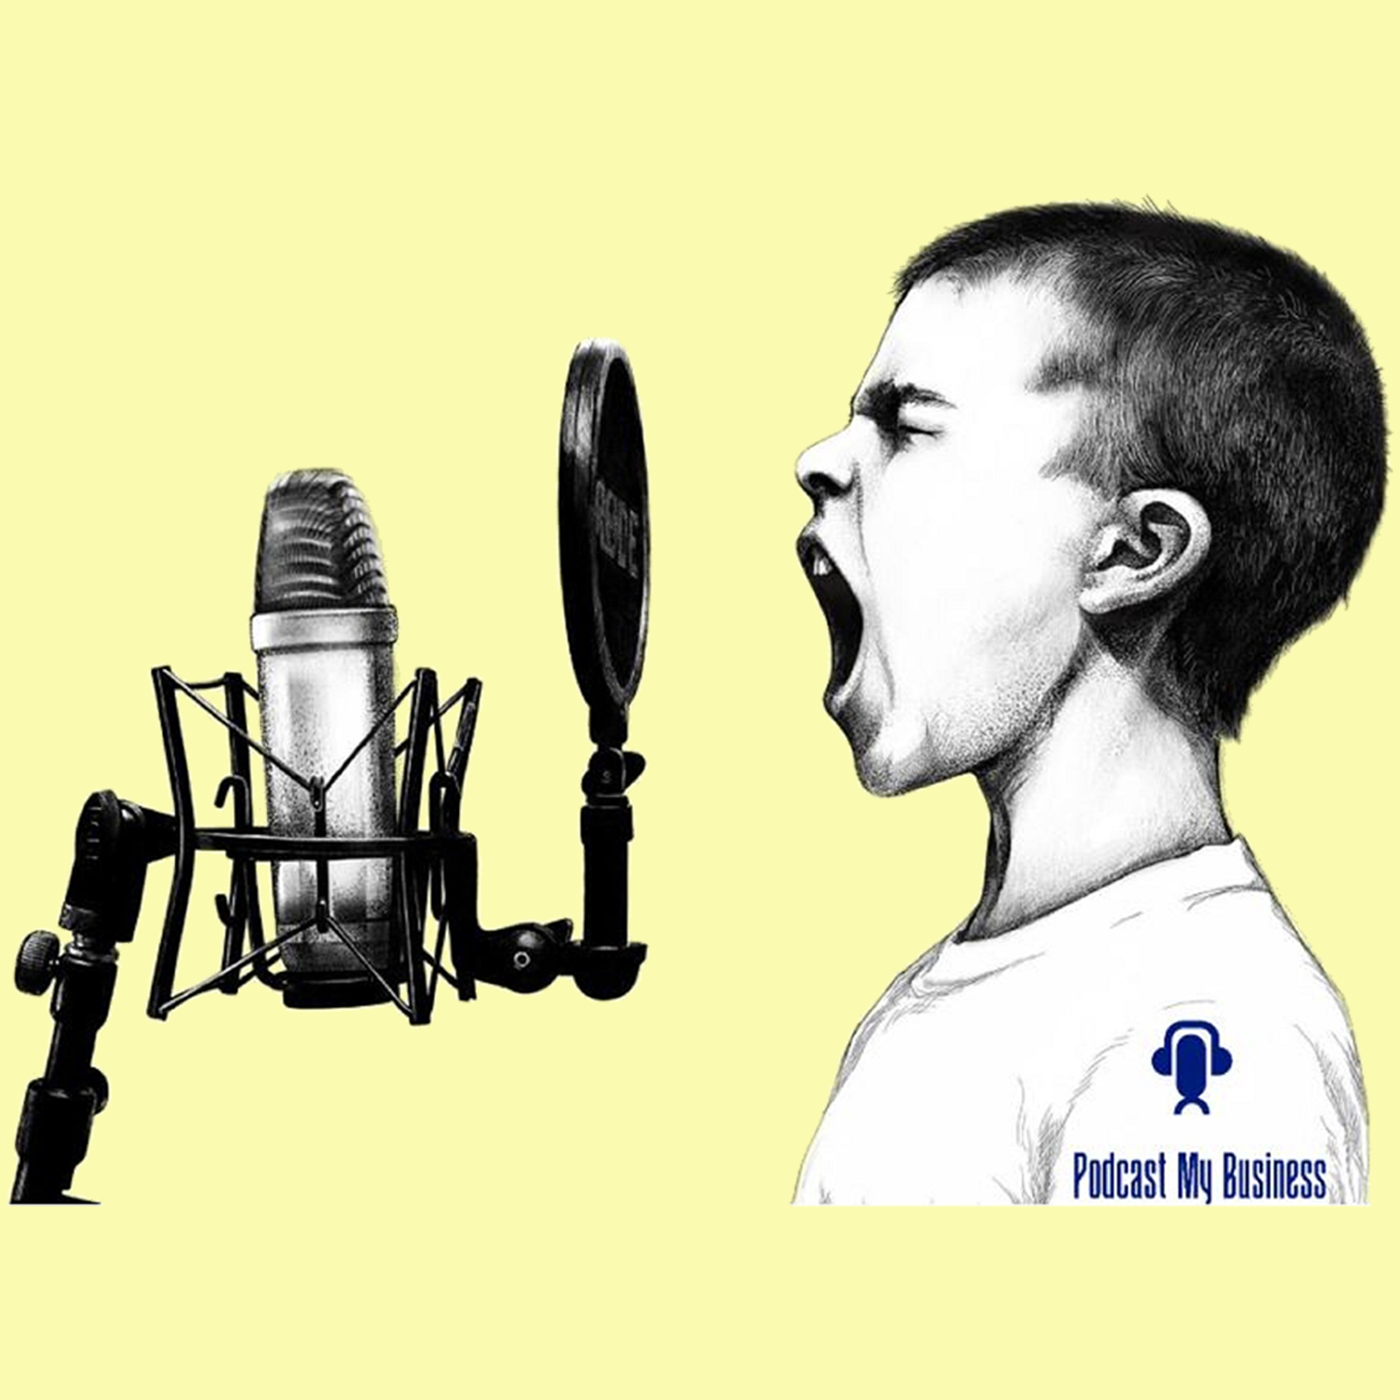 Podcast My Business